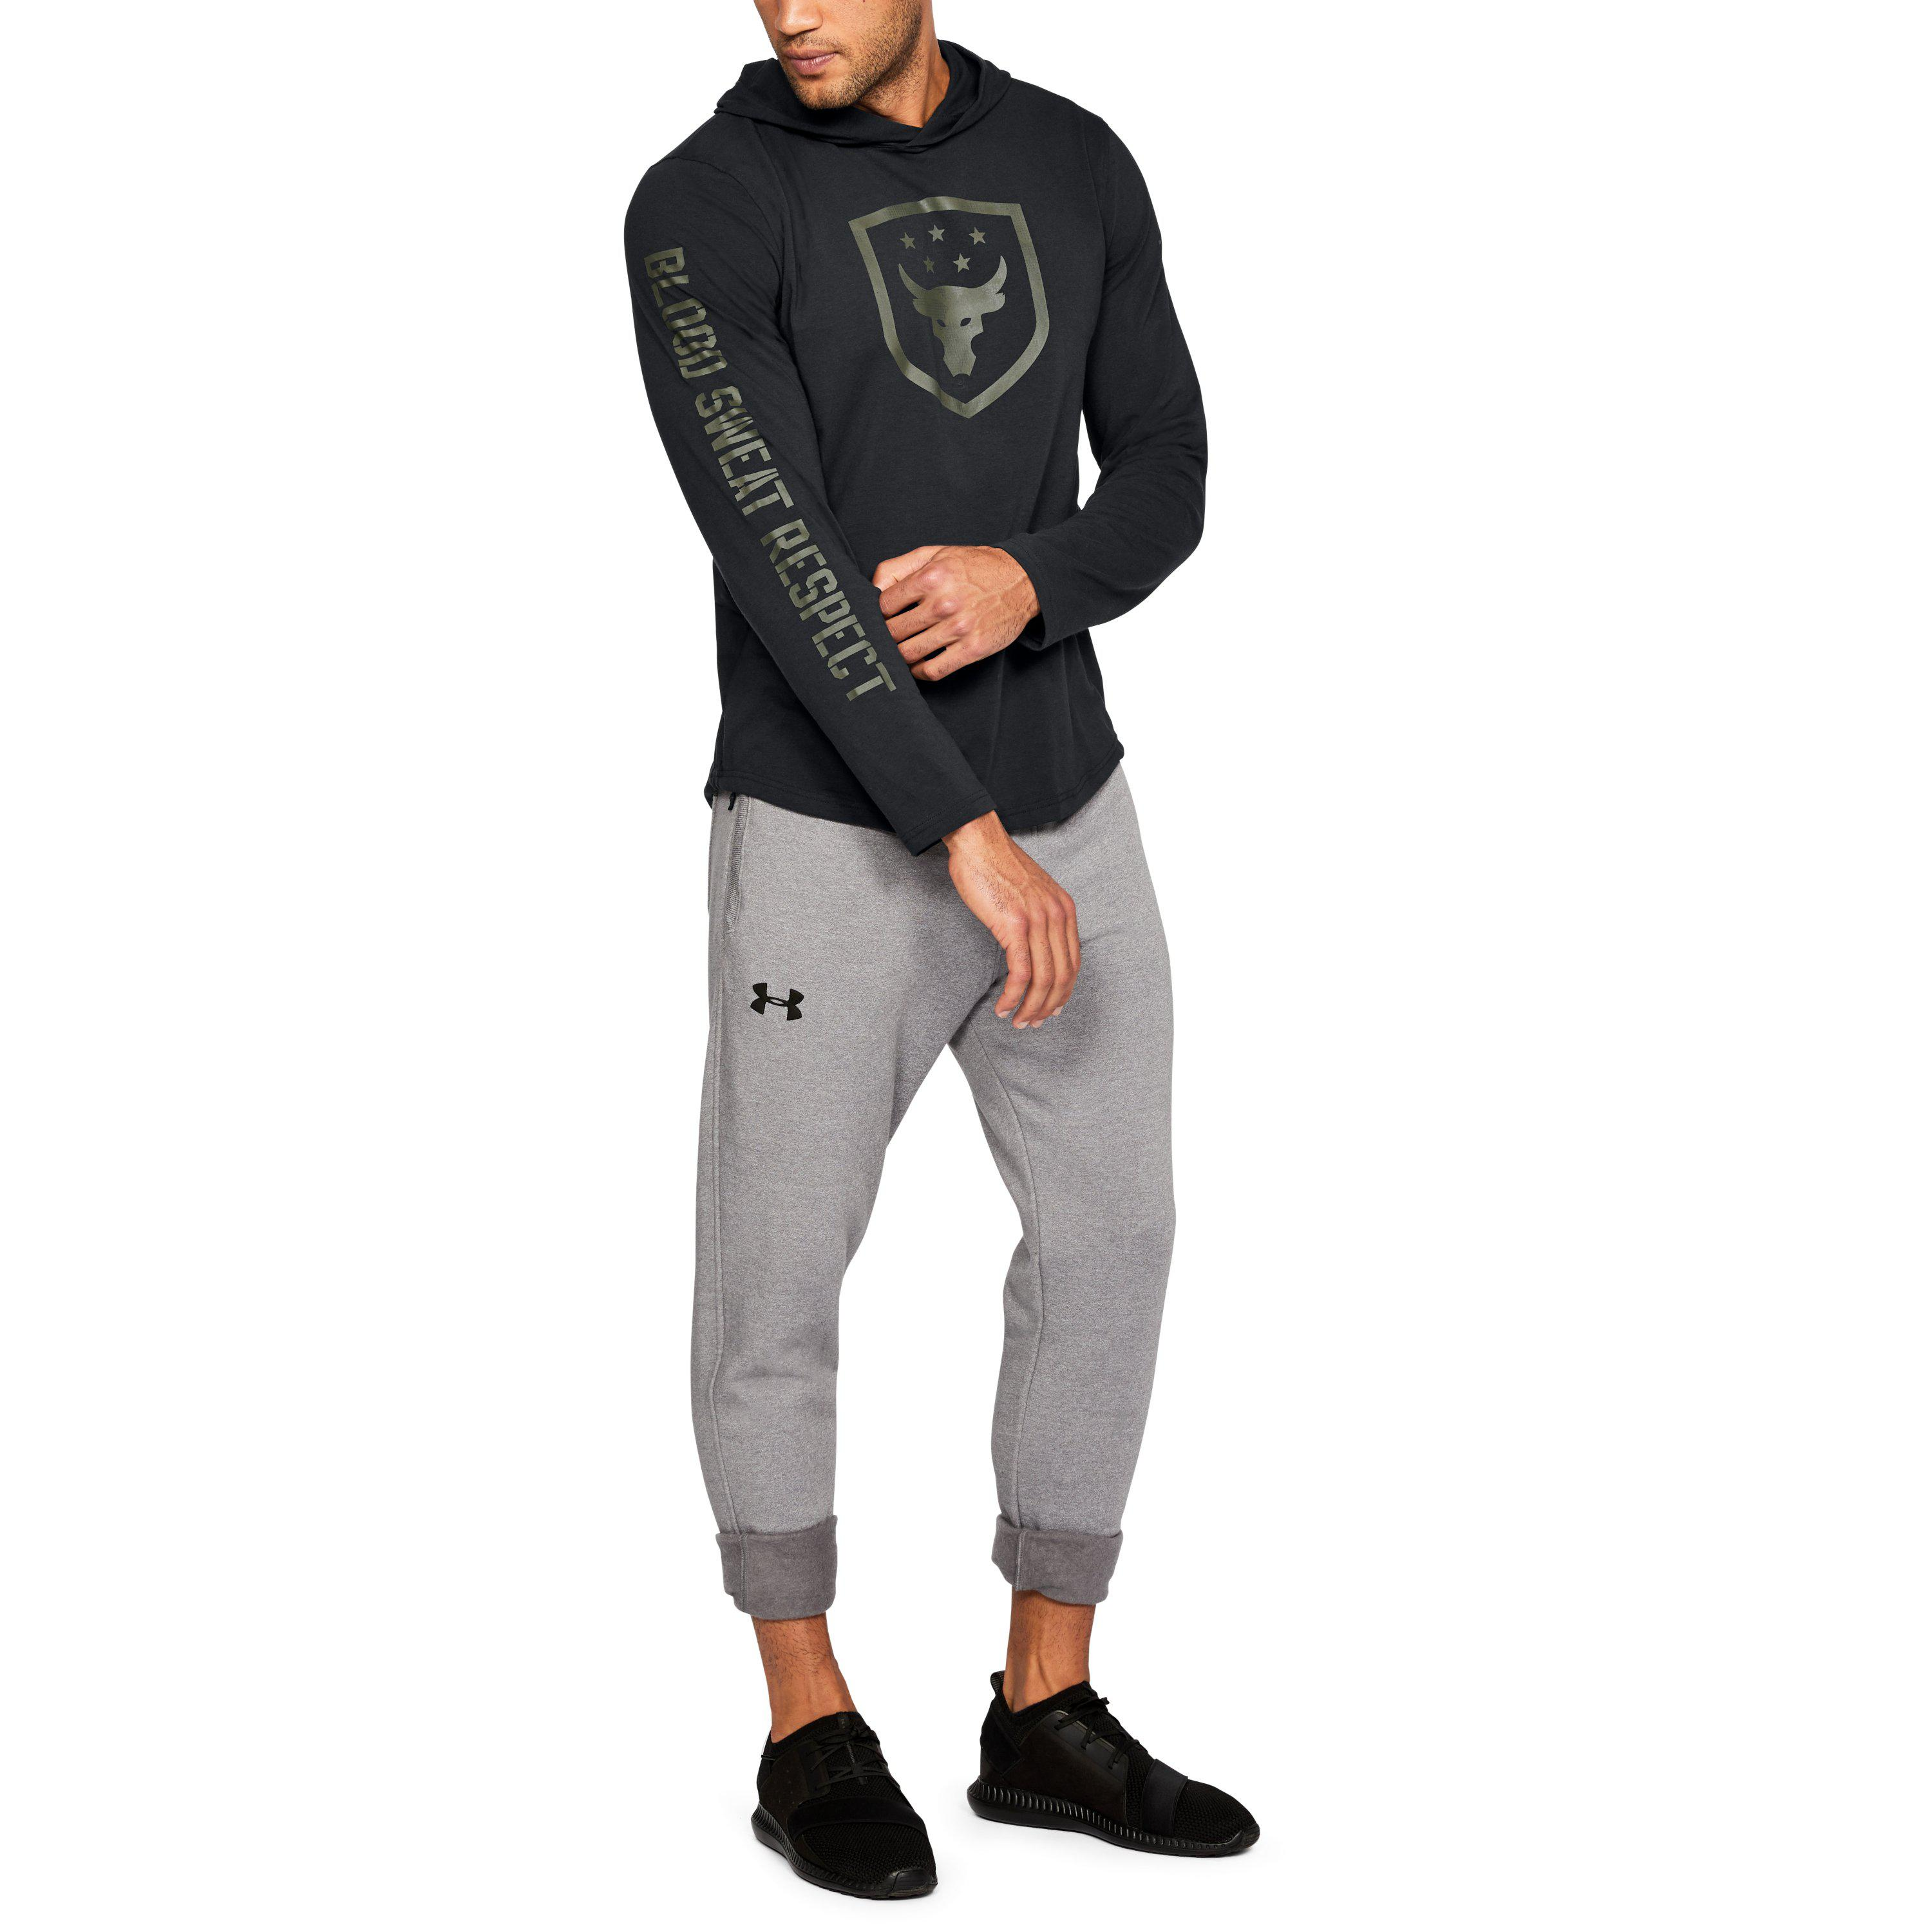 9e306420d36e1 Lyst - Under Armour Men s Ua X Project Rock Troops Hoodie in Black ...